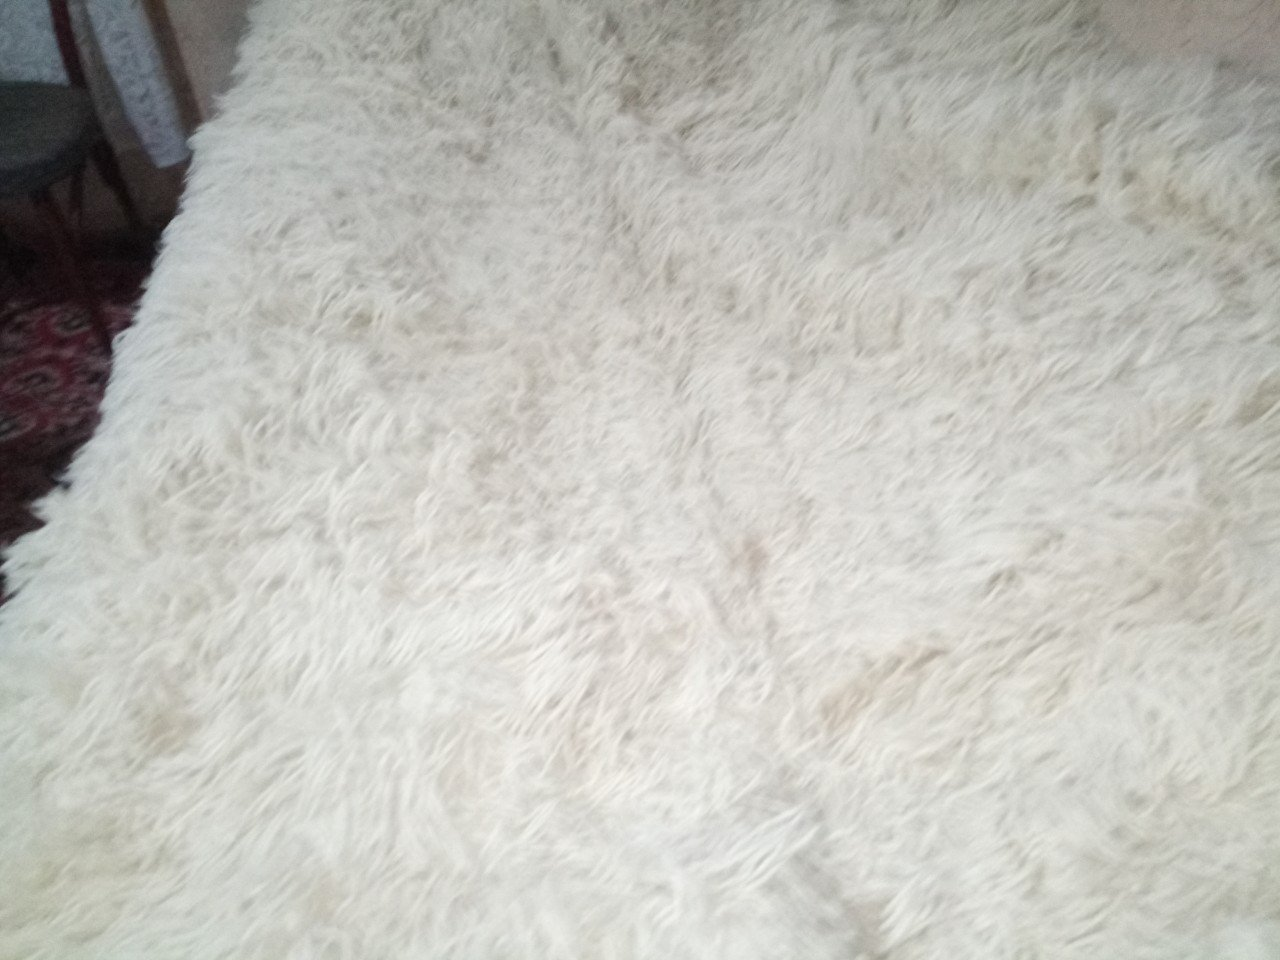 Rug  White  with fluffy long fringe Handwoven 100% Wool